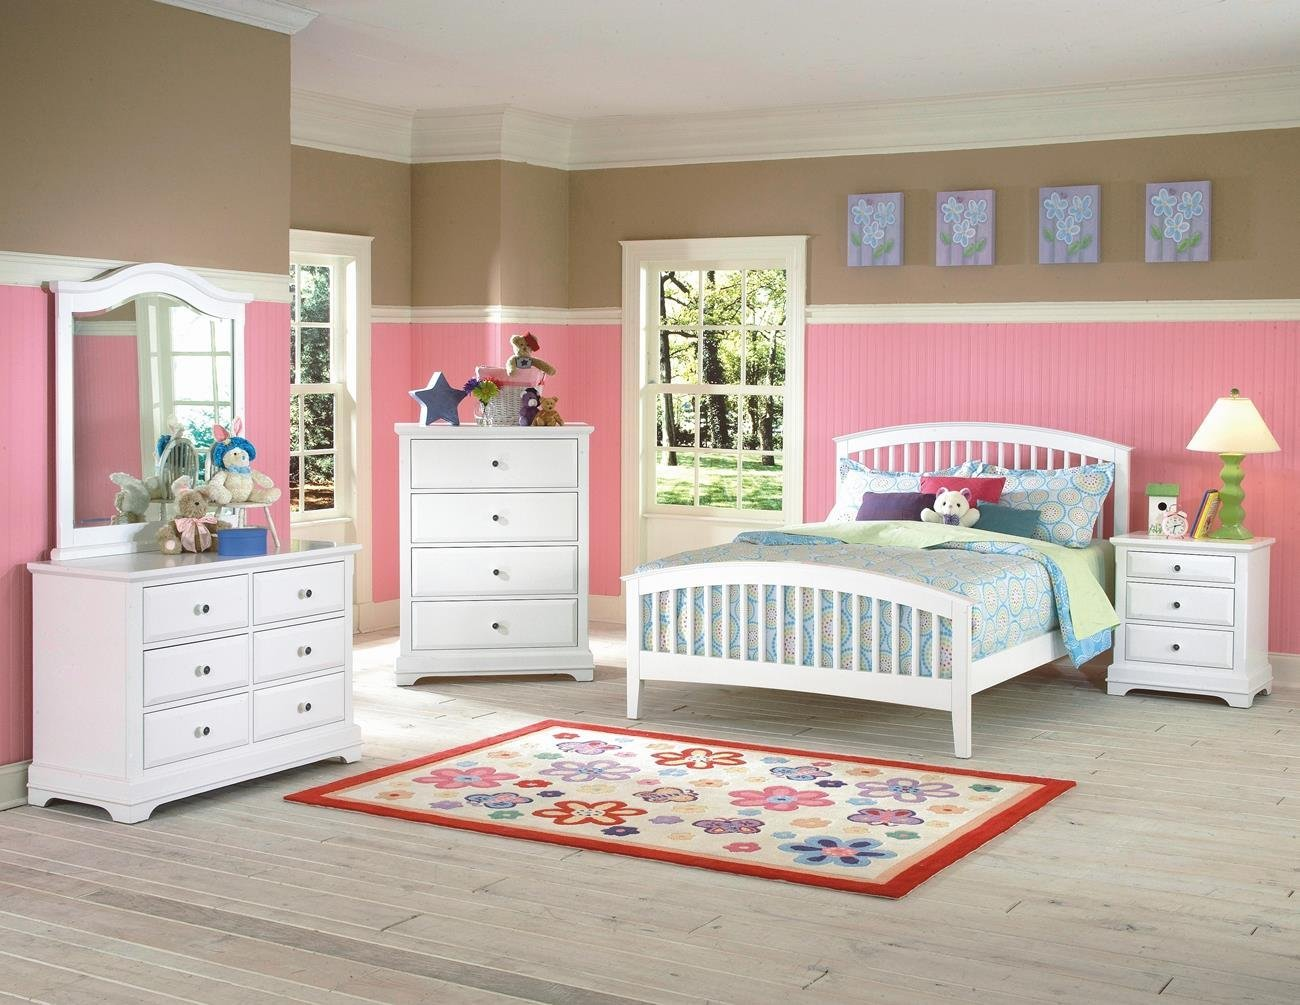 Beatrice Youth 4 Piece Twin Slat Bedroom Set in White Finish